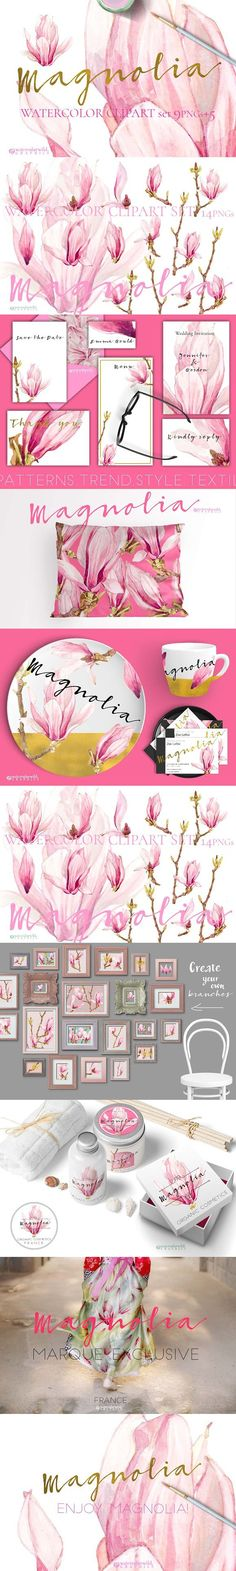 Magnolia-Clipart Set Watercolor. Watercolor Flowers